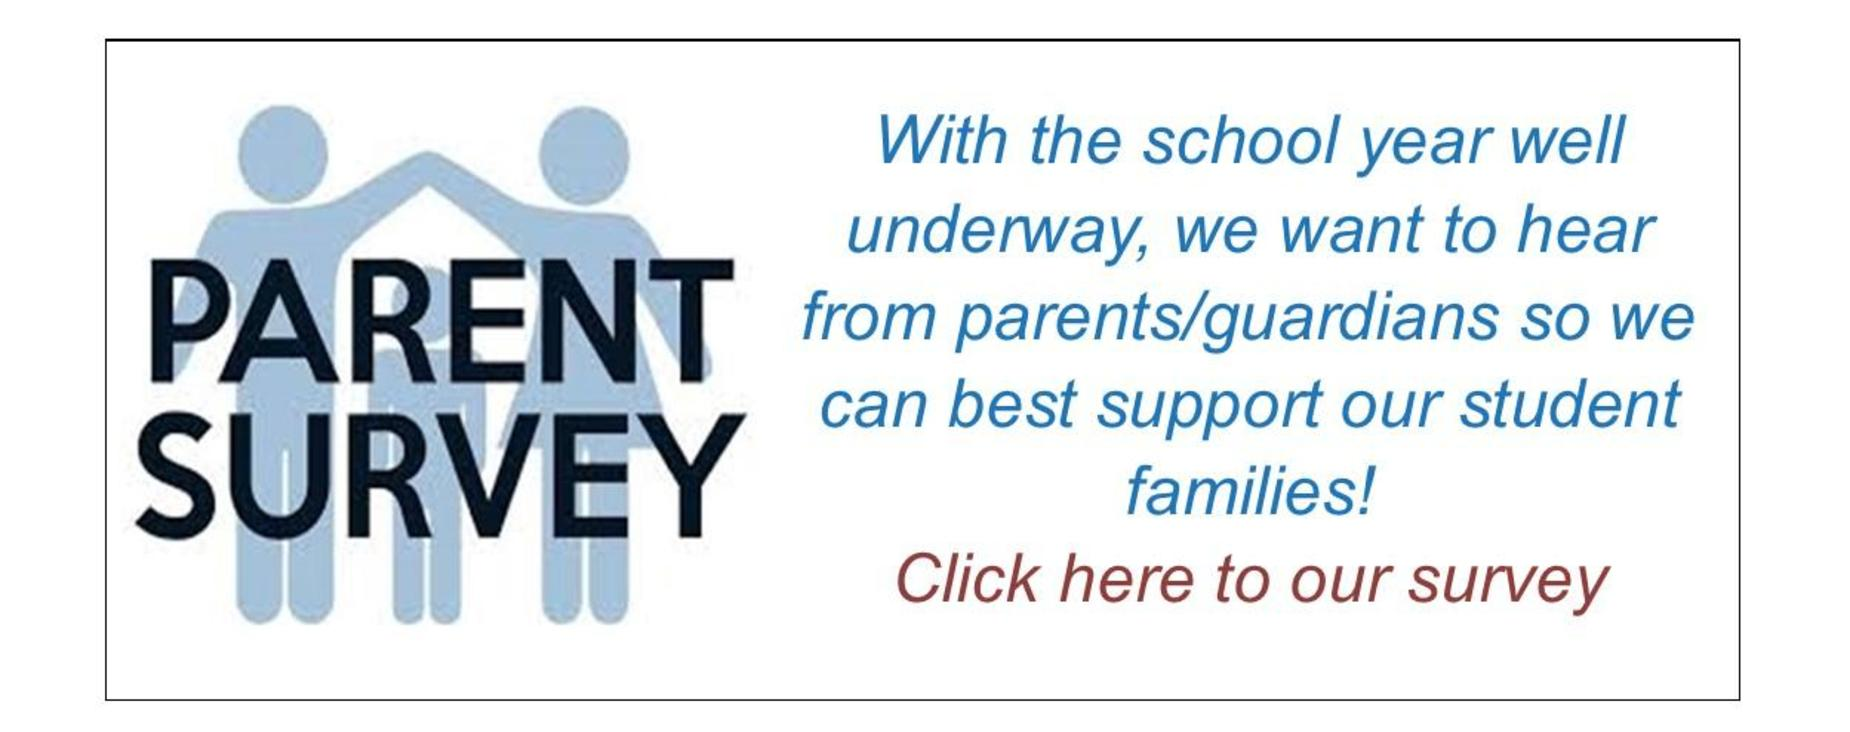 Parent Survey available with link